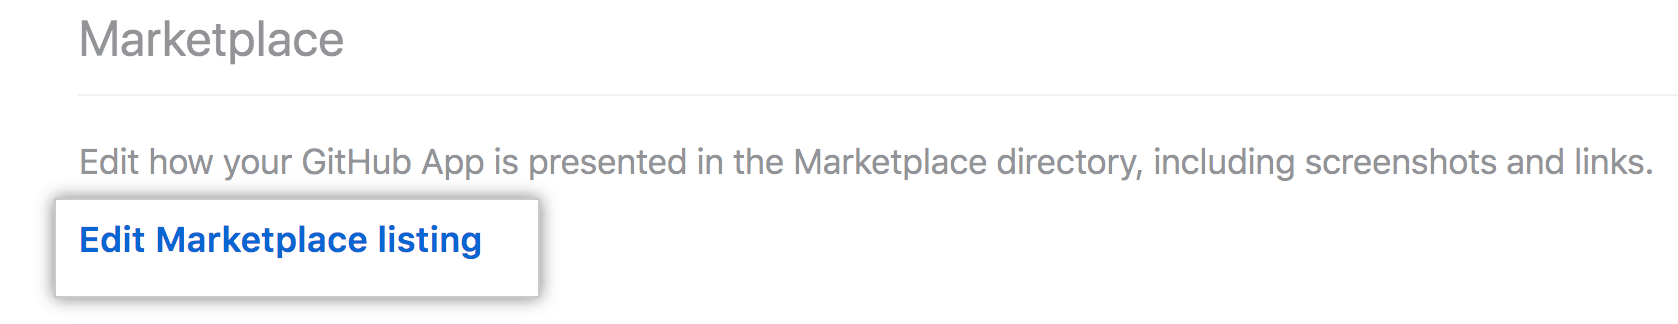 Getting started with github marketplace: how to list your apps and tools - onmsft. Com - may 20, 2021